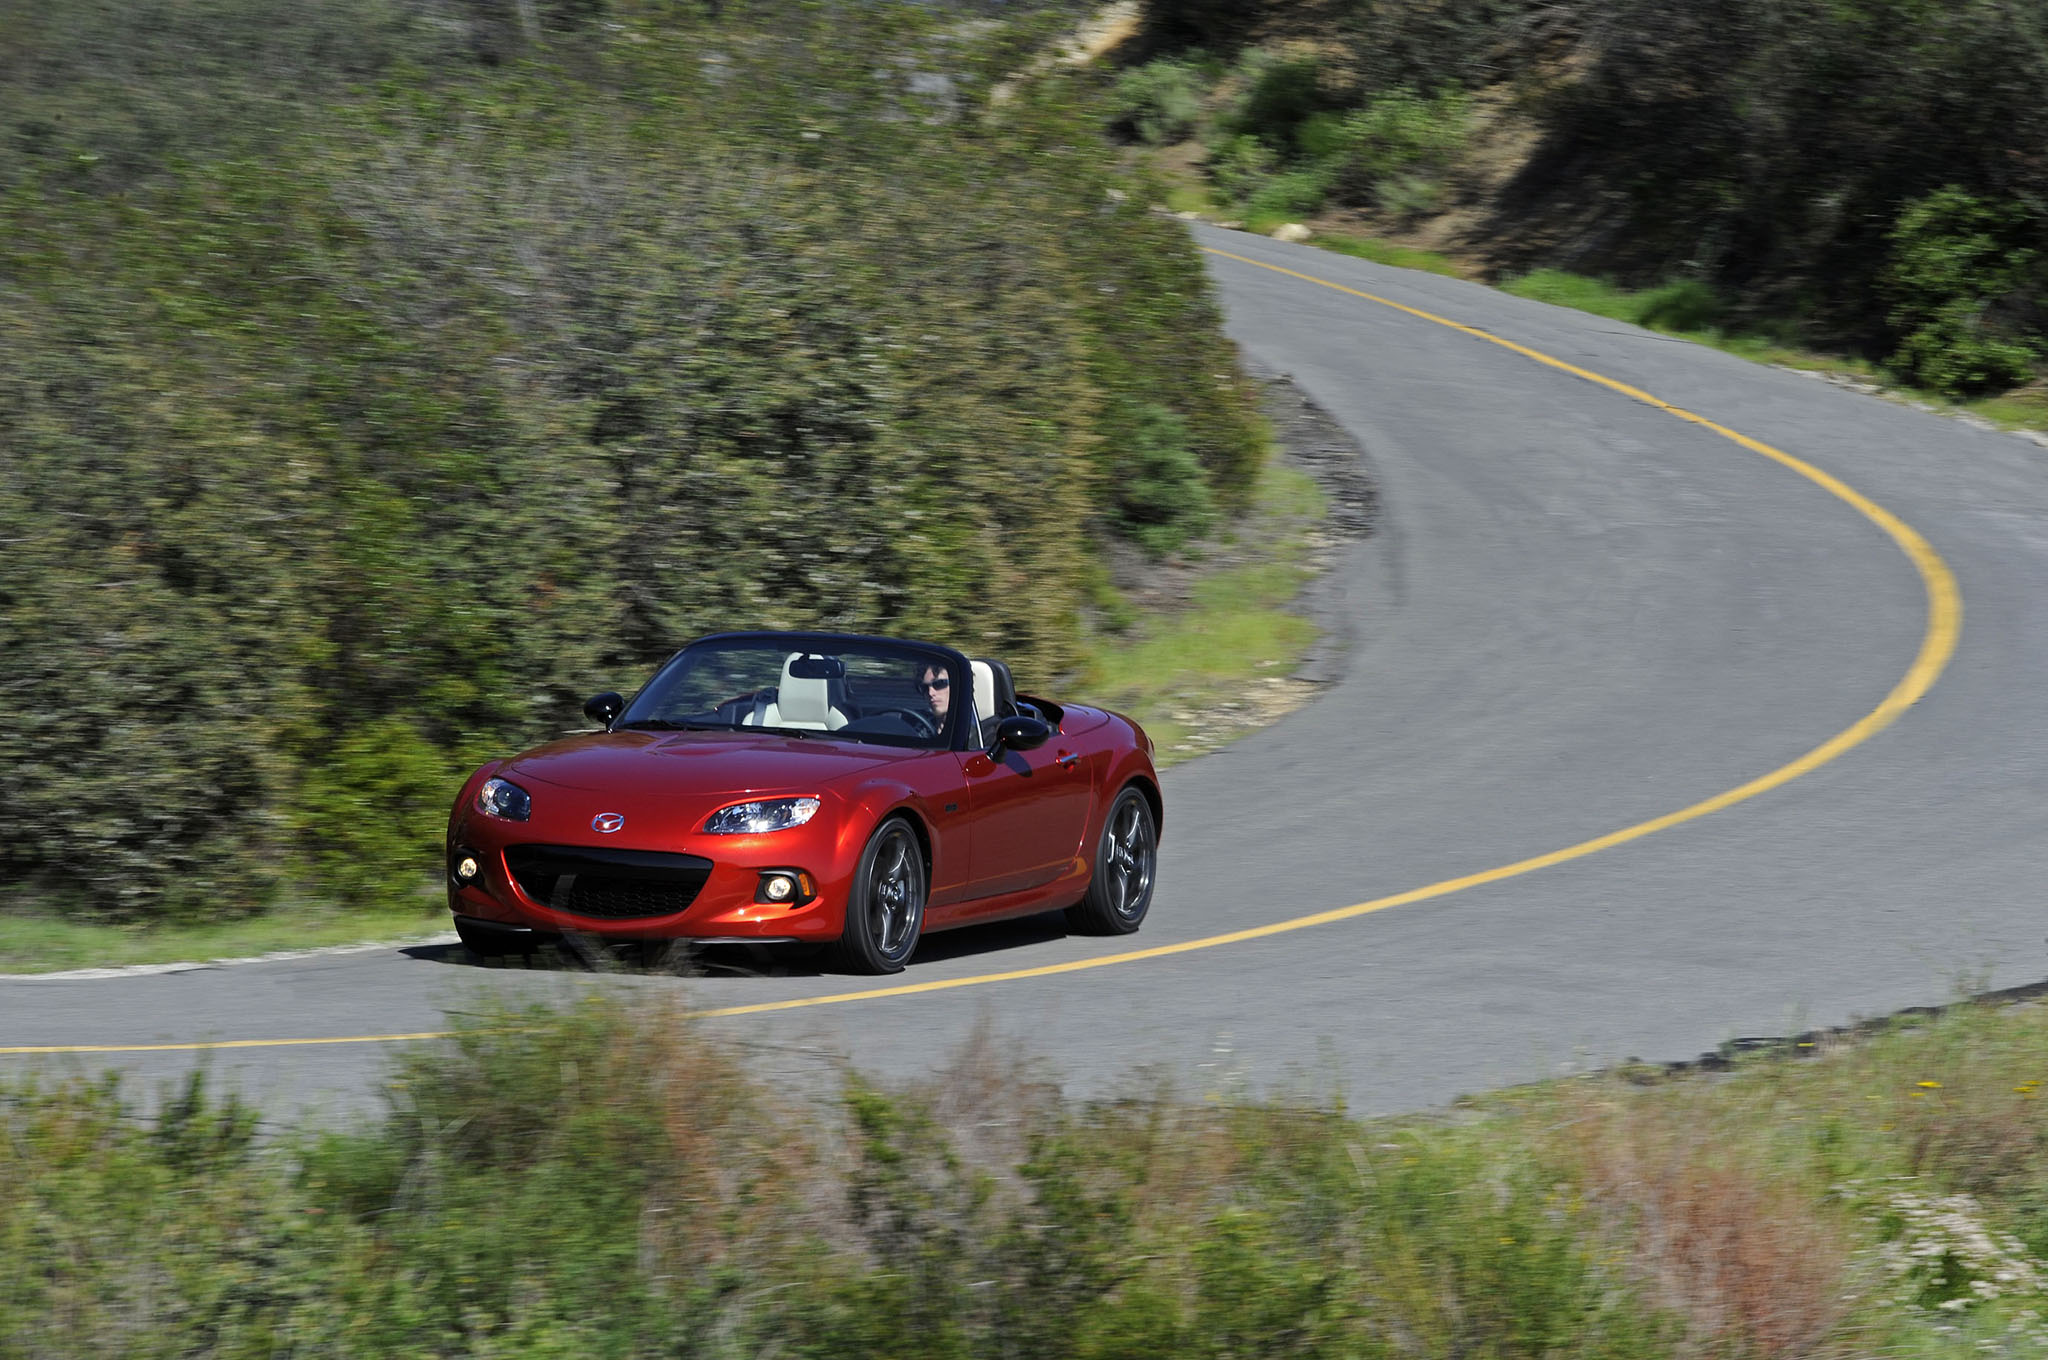 2015 Mazda Miata 25th Anniversary Edition 22 Front Three Quarter In Motion